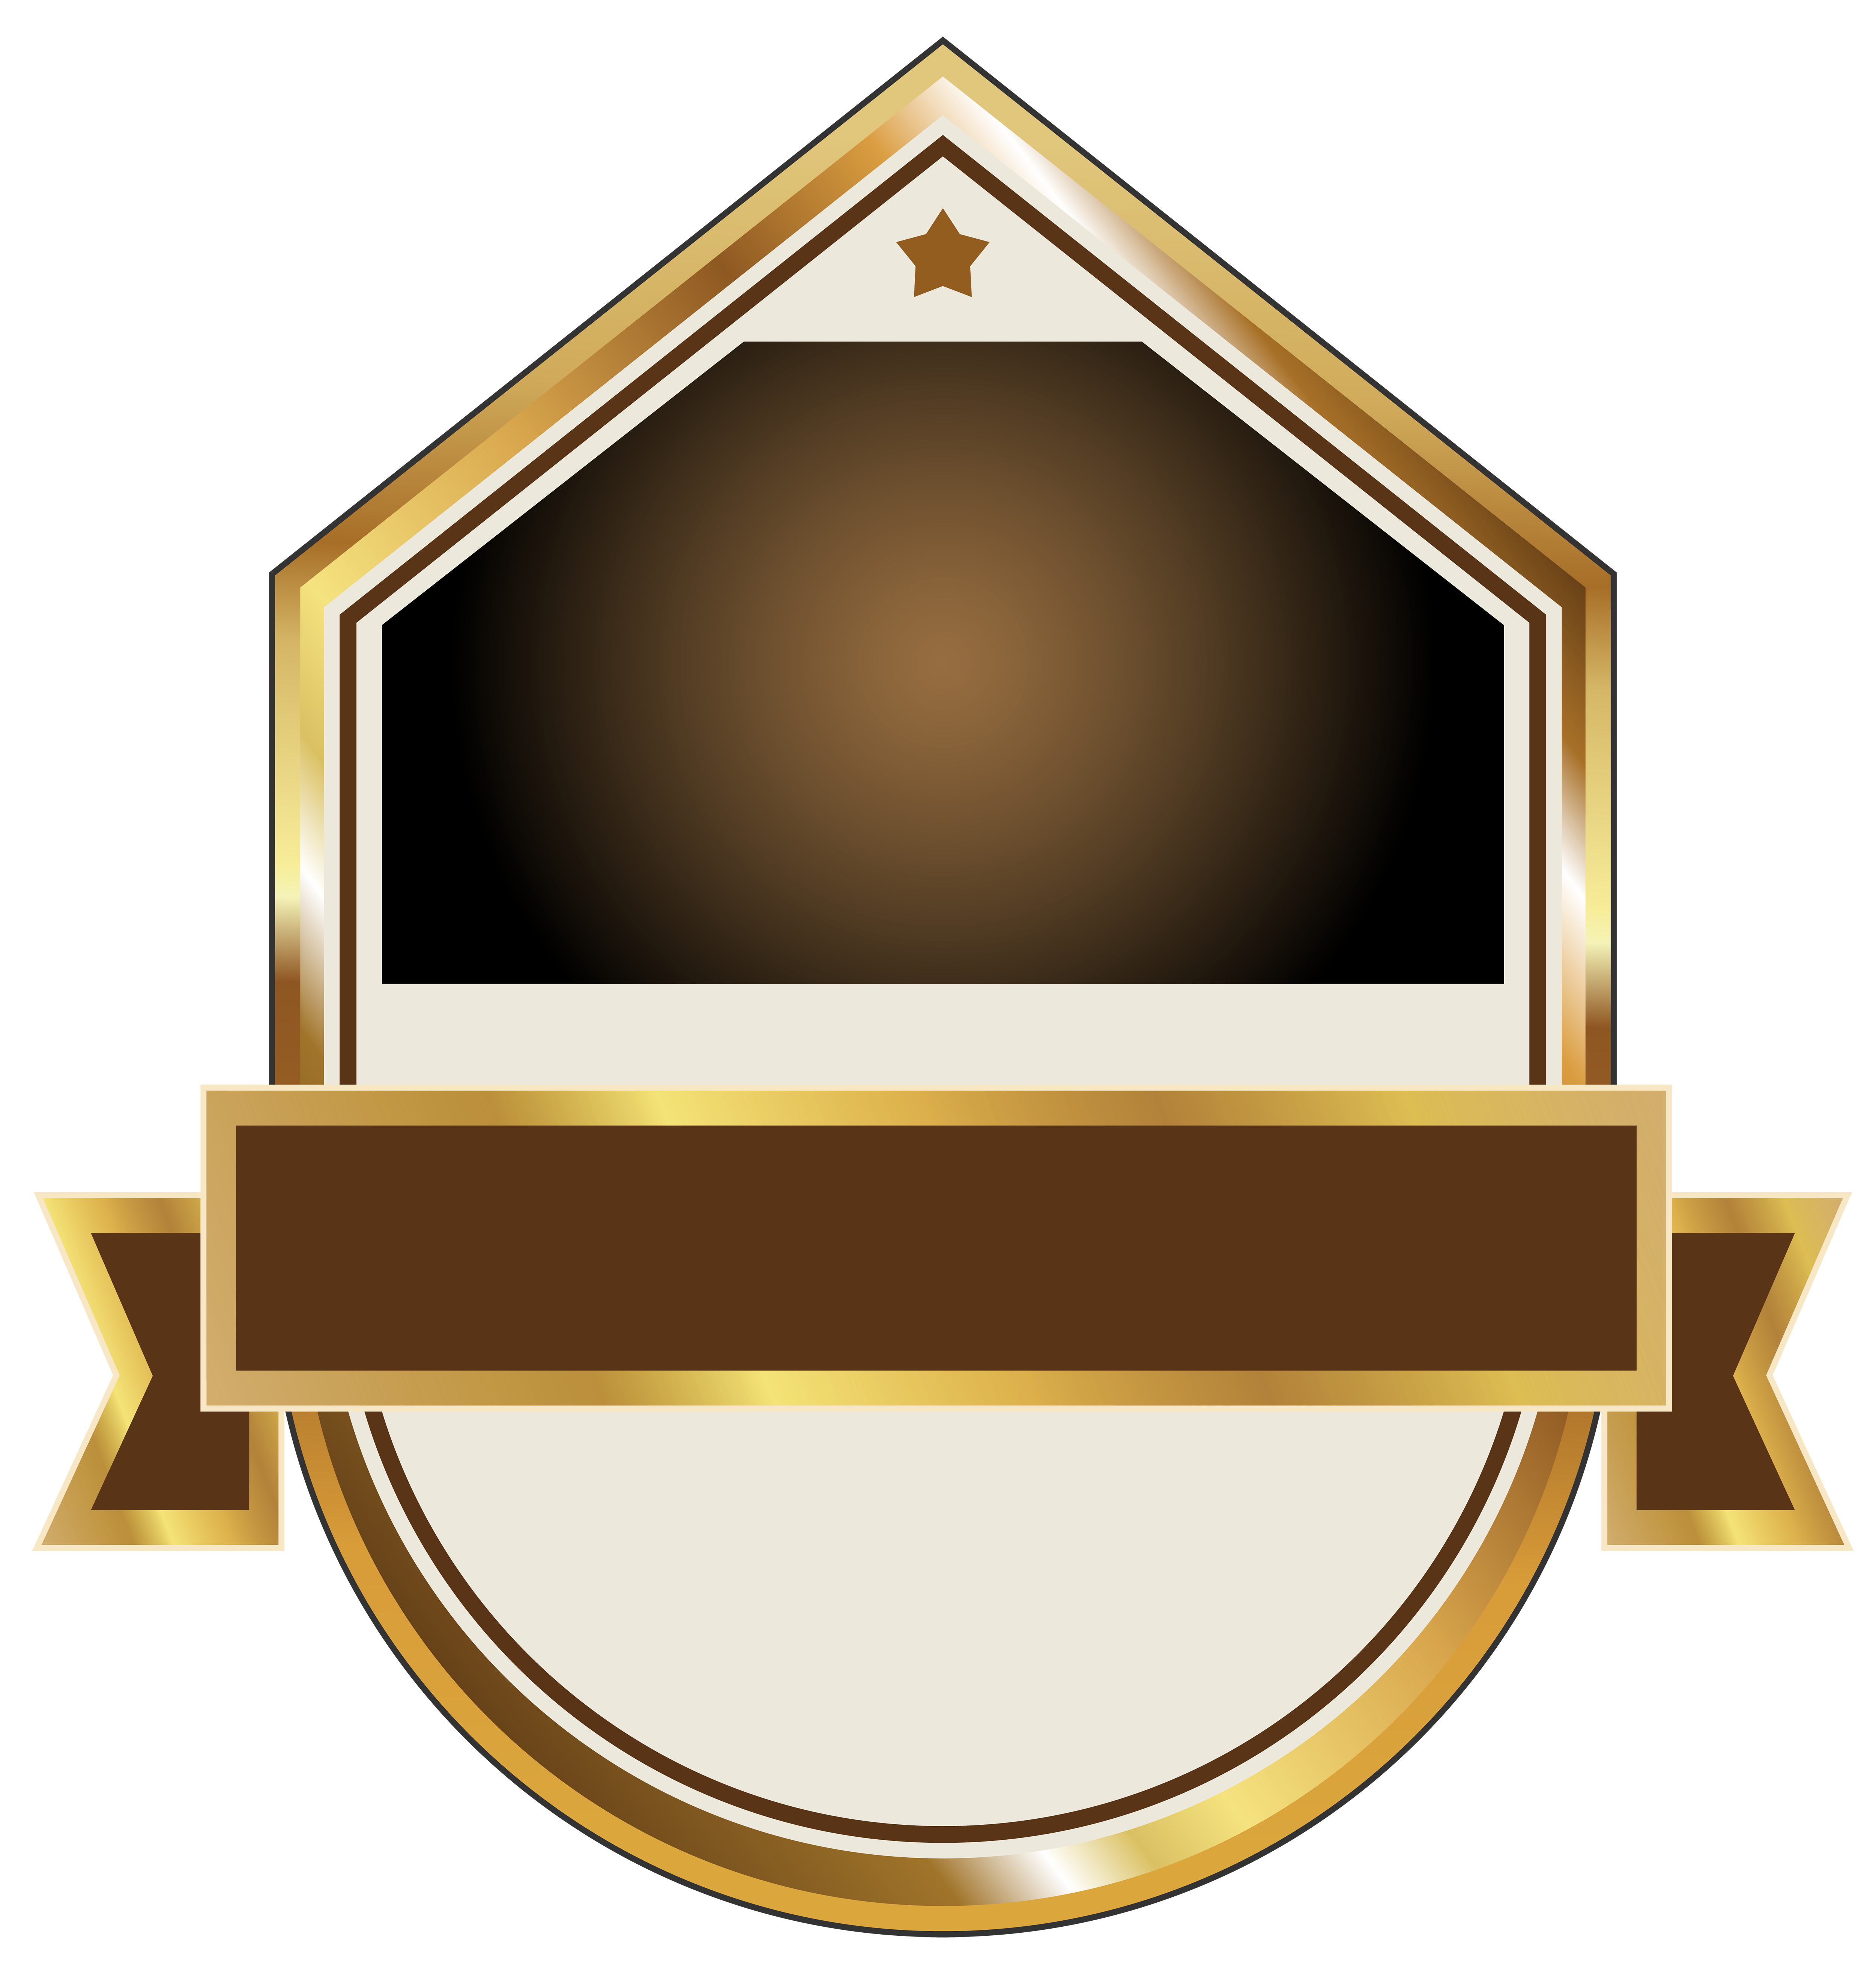 Gold and brown label. Detective clipart symbol